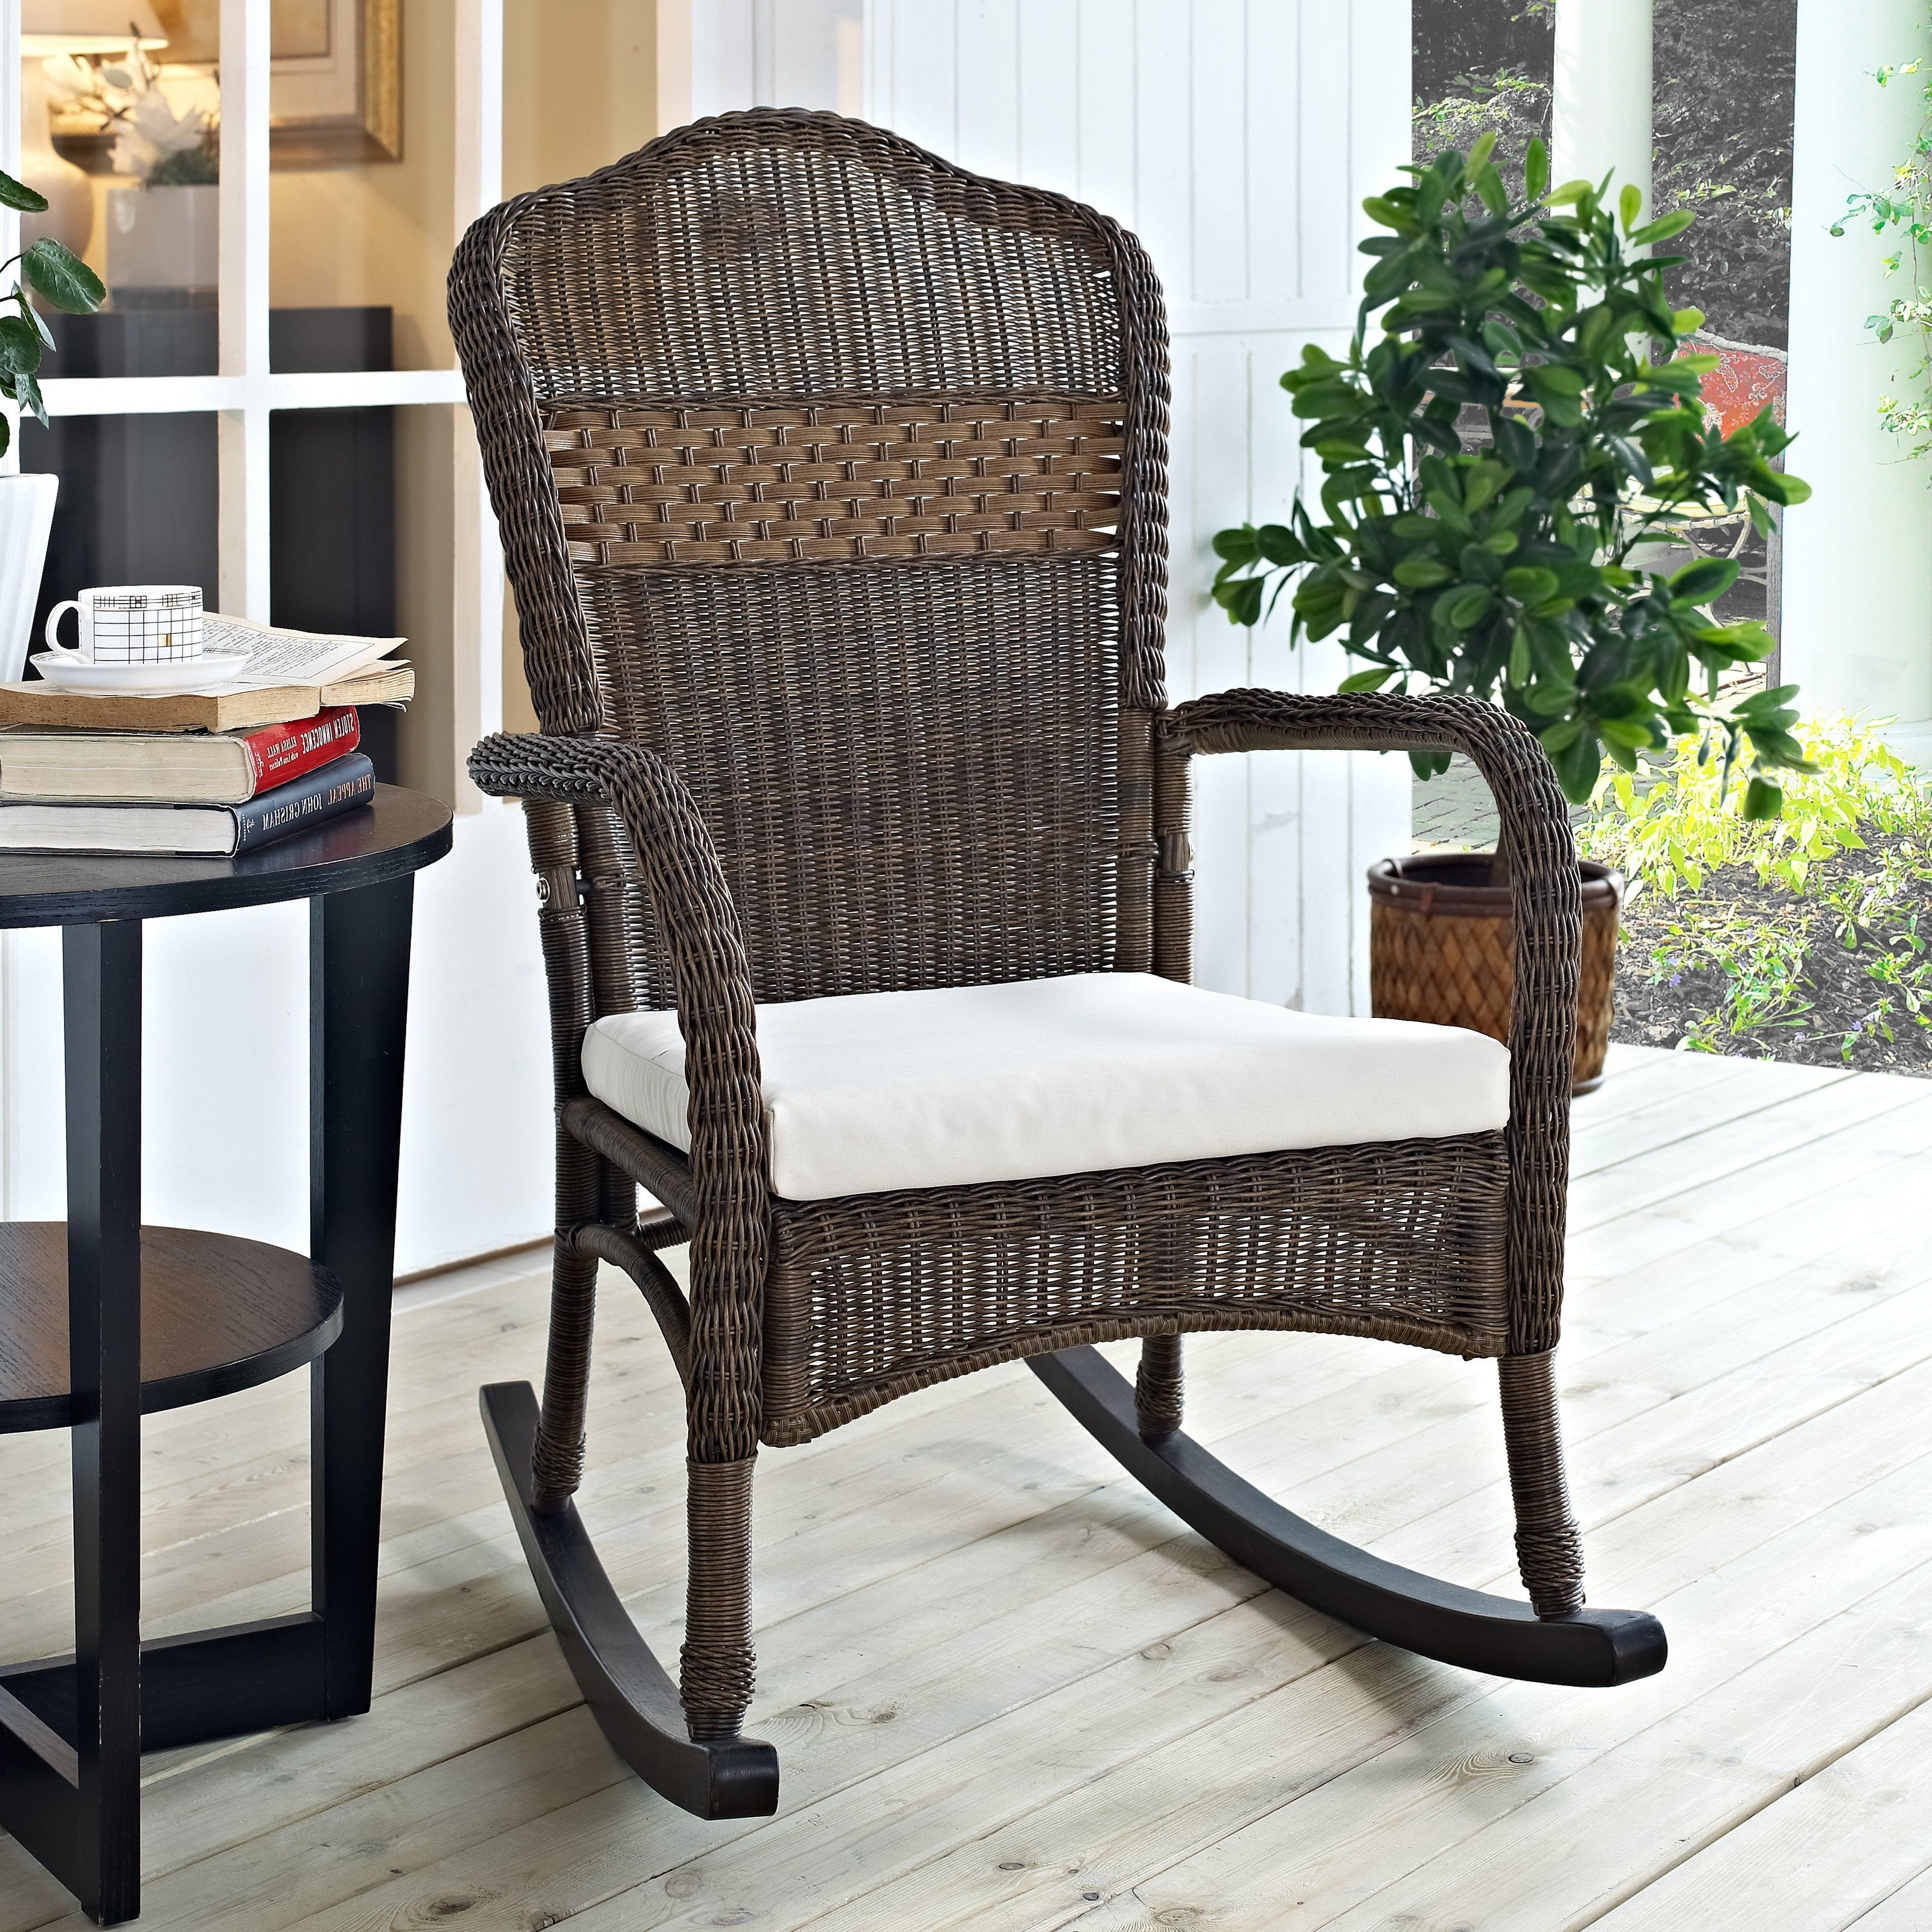 Outdoor Coral Coast Mocha Resin Wicker Rocking Chair With Beige In Fashionable Outdoor Wicker Rocking Chairs With Cushions (View 9 of 20)